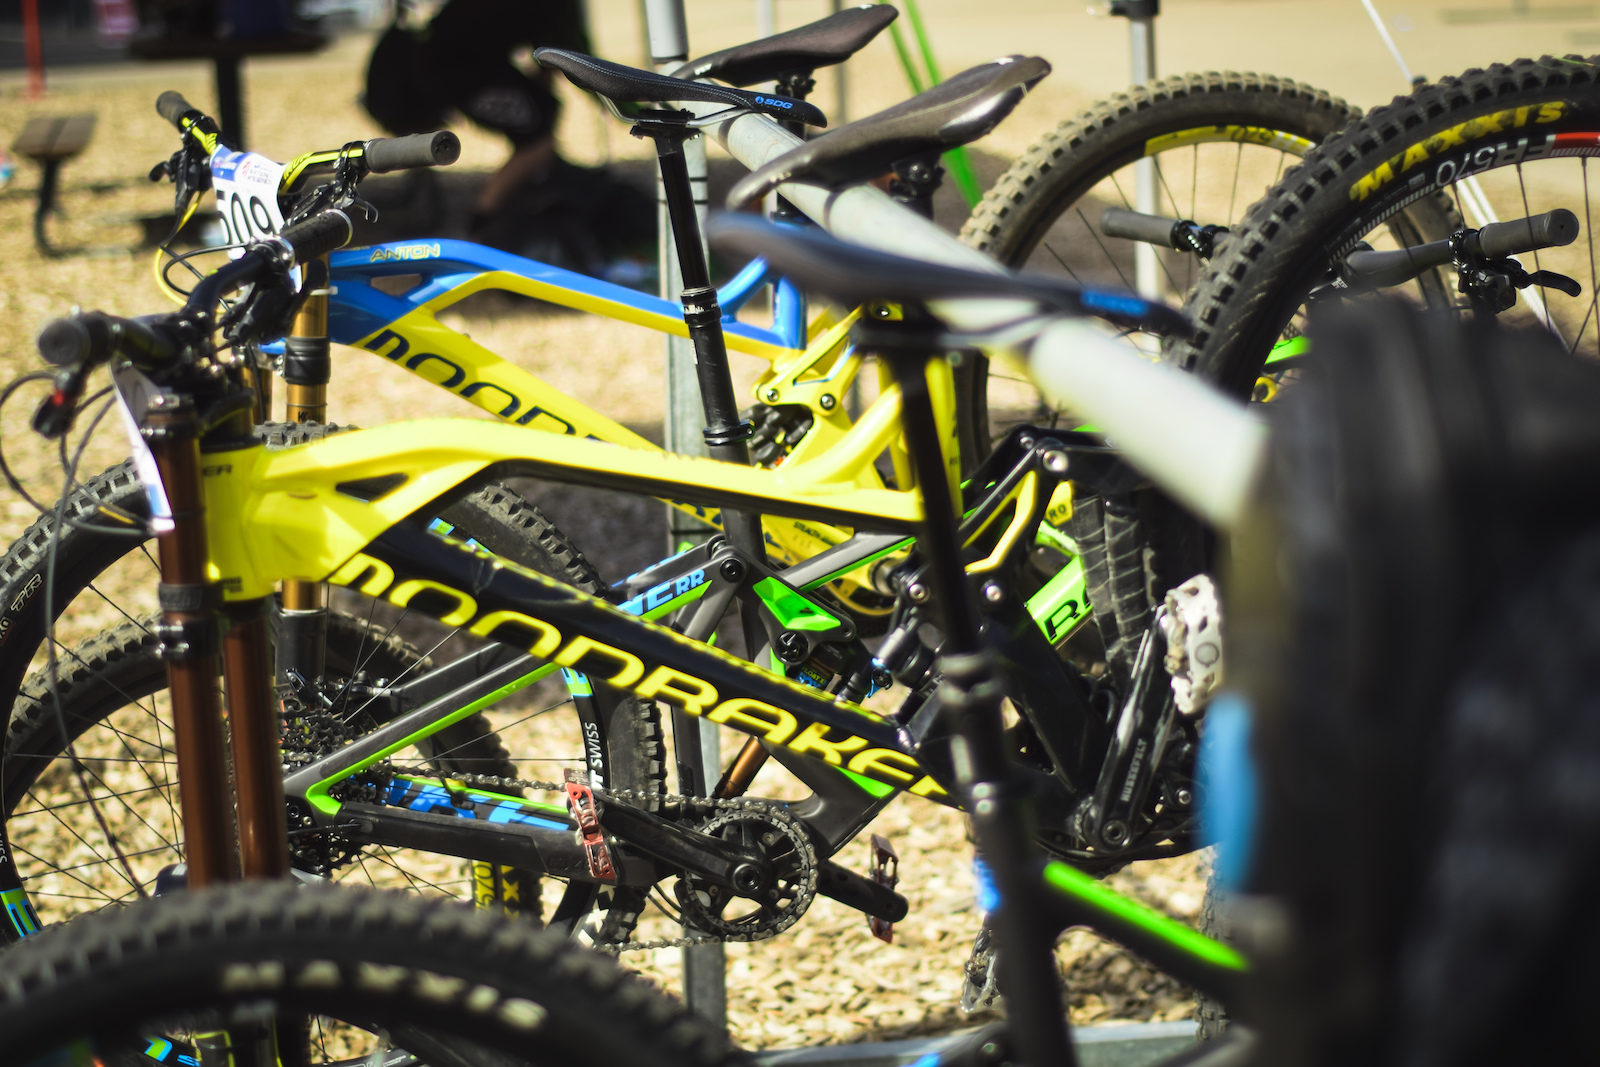 Countless Mondraker Summum s hanging on a ski rack in the pits